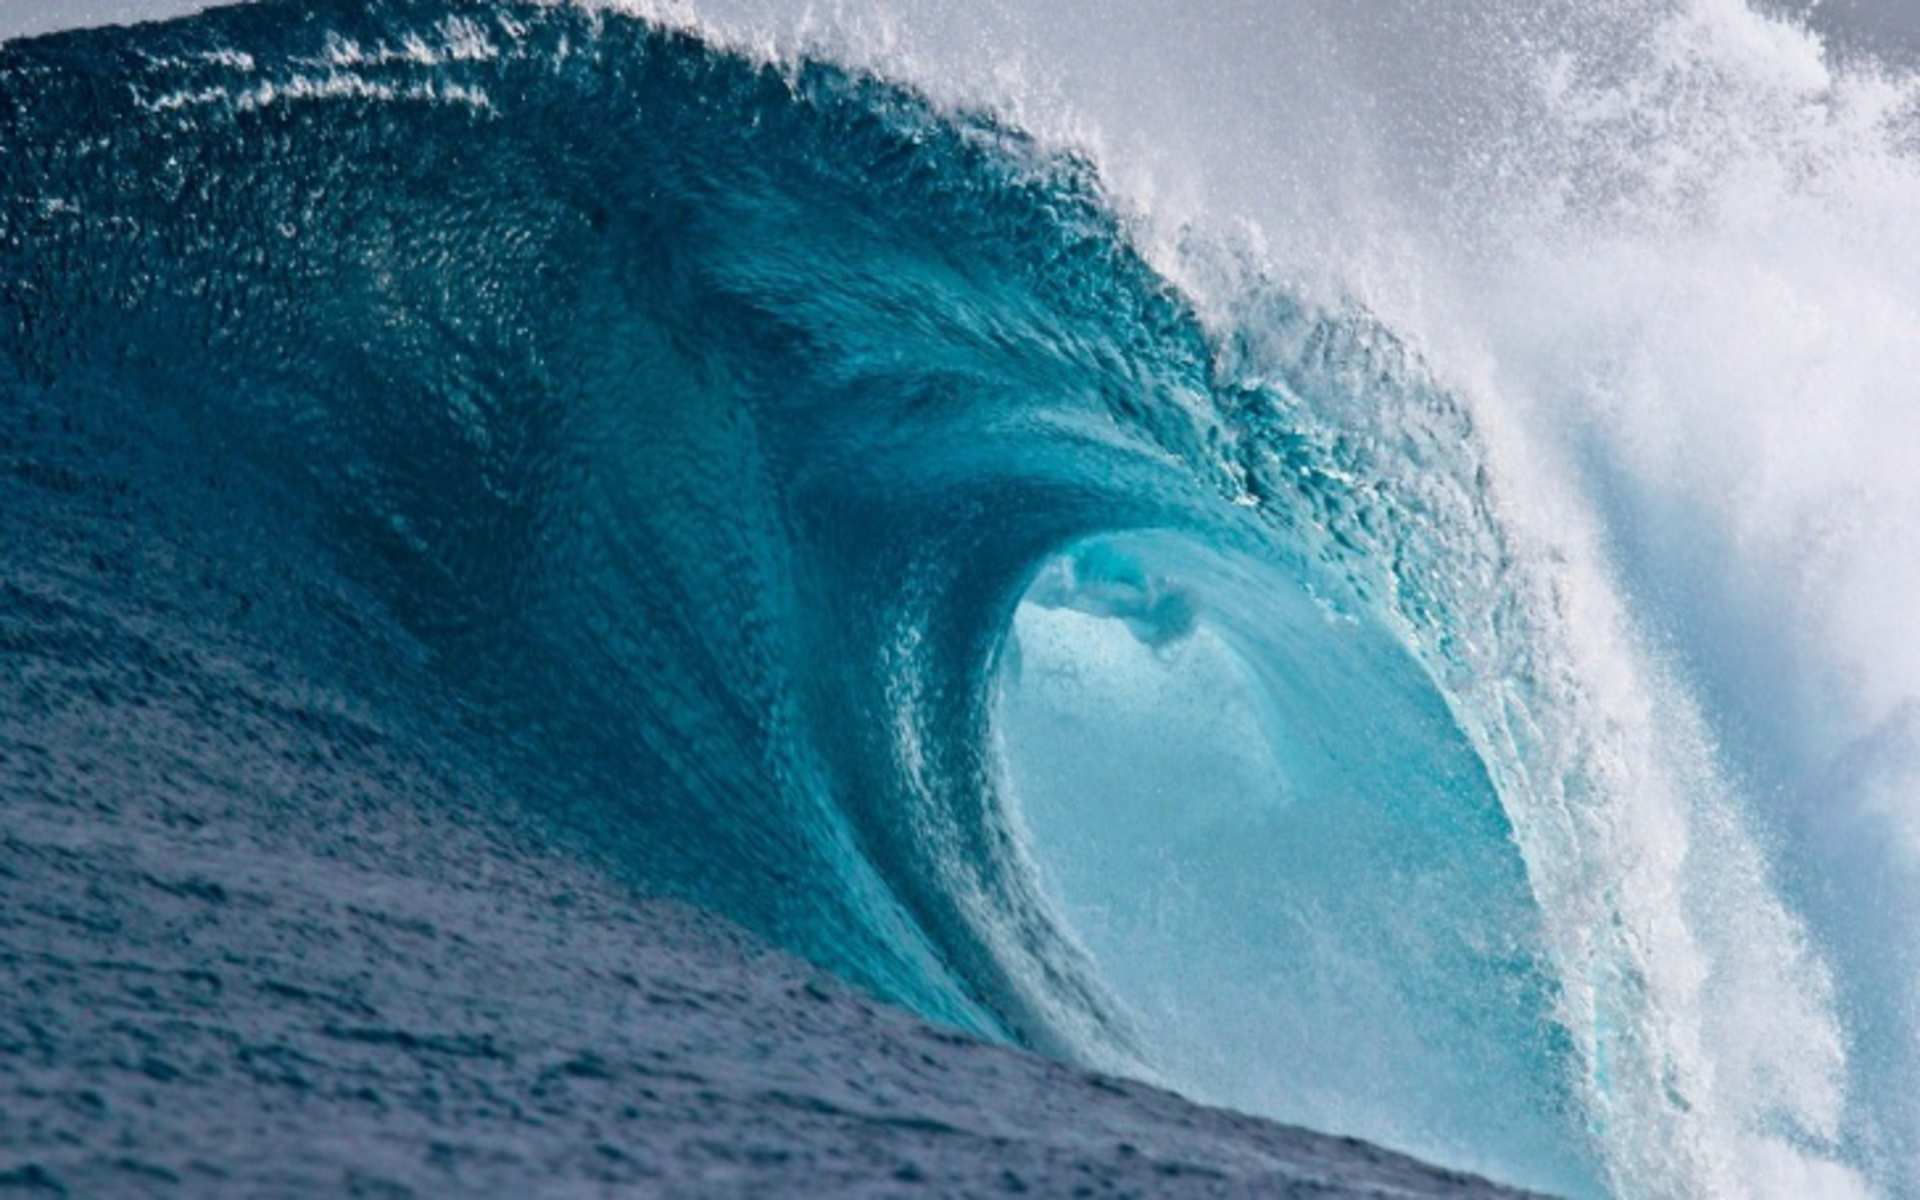 Free Pictures of Waves